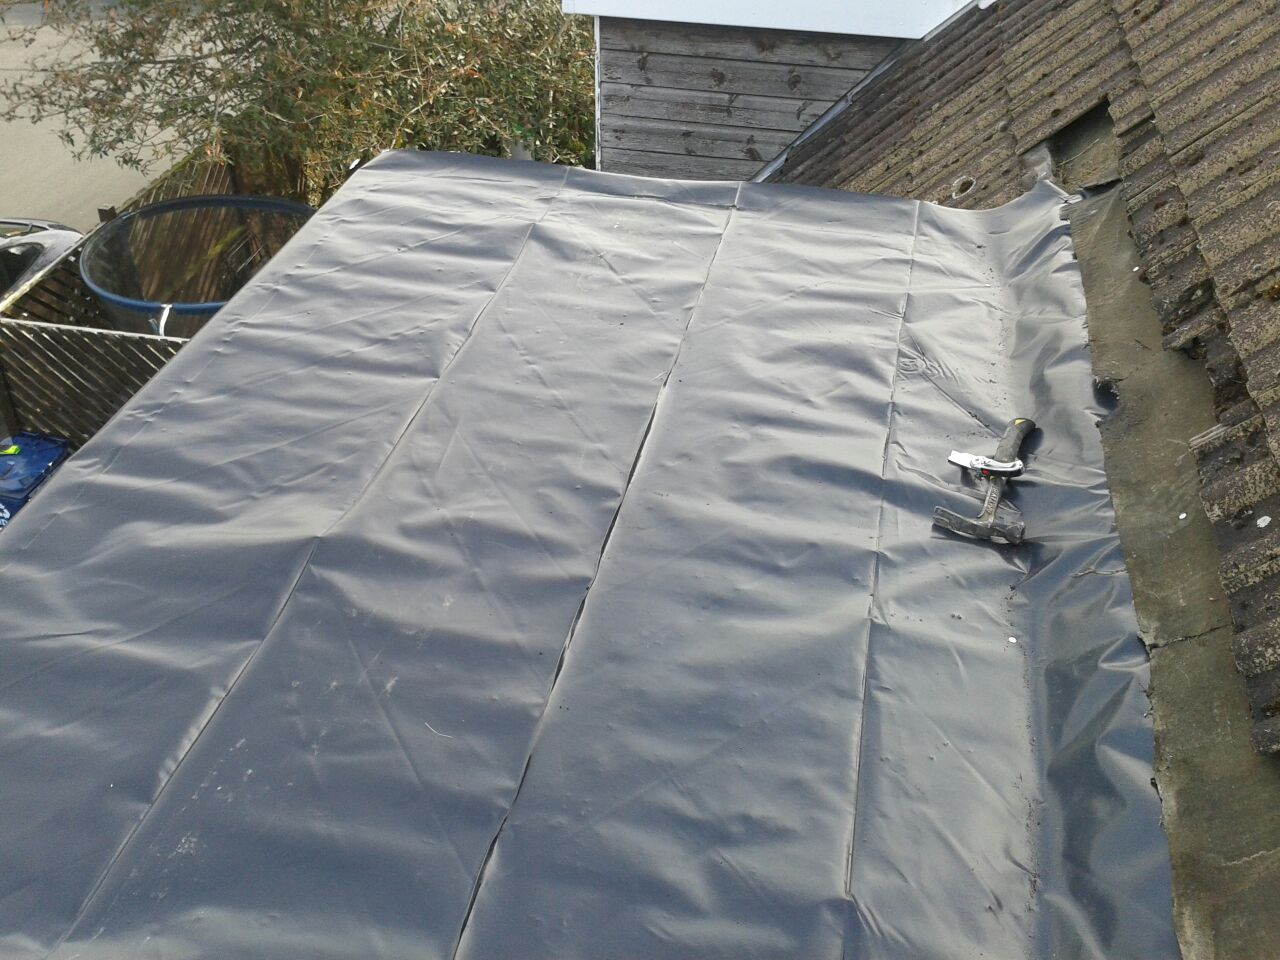 Warm Roof And Grp Installed On Dormer Synergy Roofing